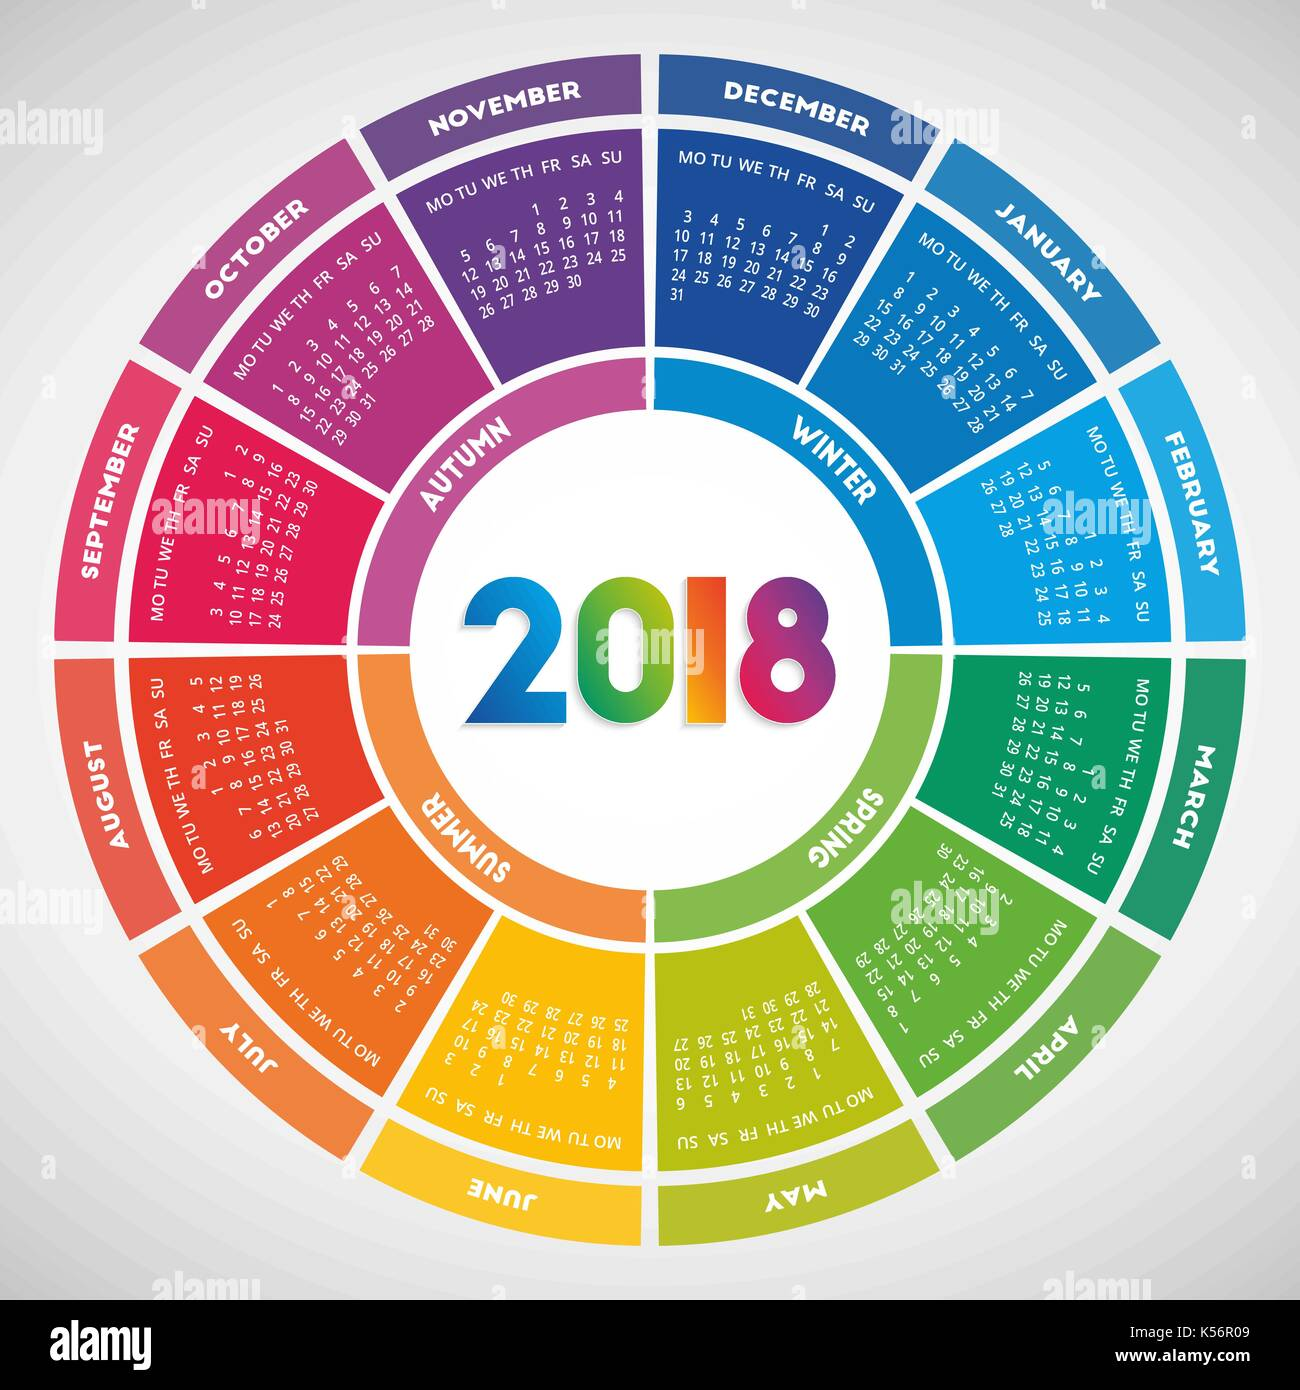 Year Round Calendar Template : Colorful round calendar design week starts on monday